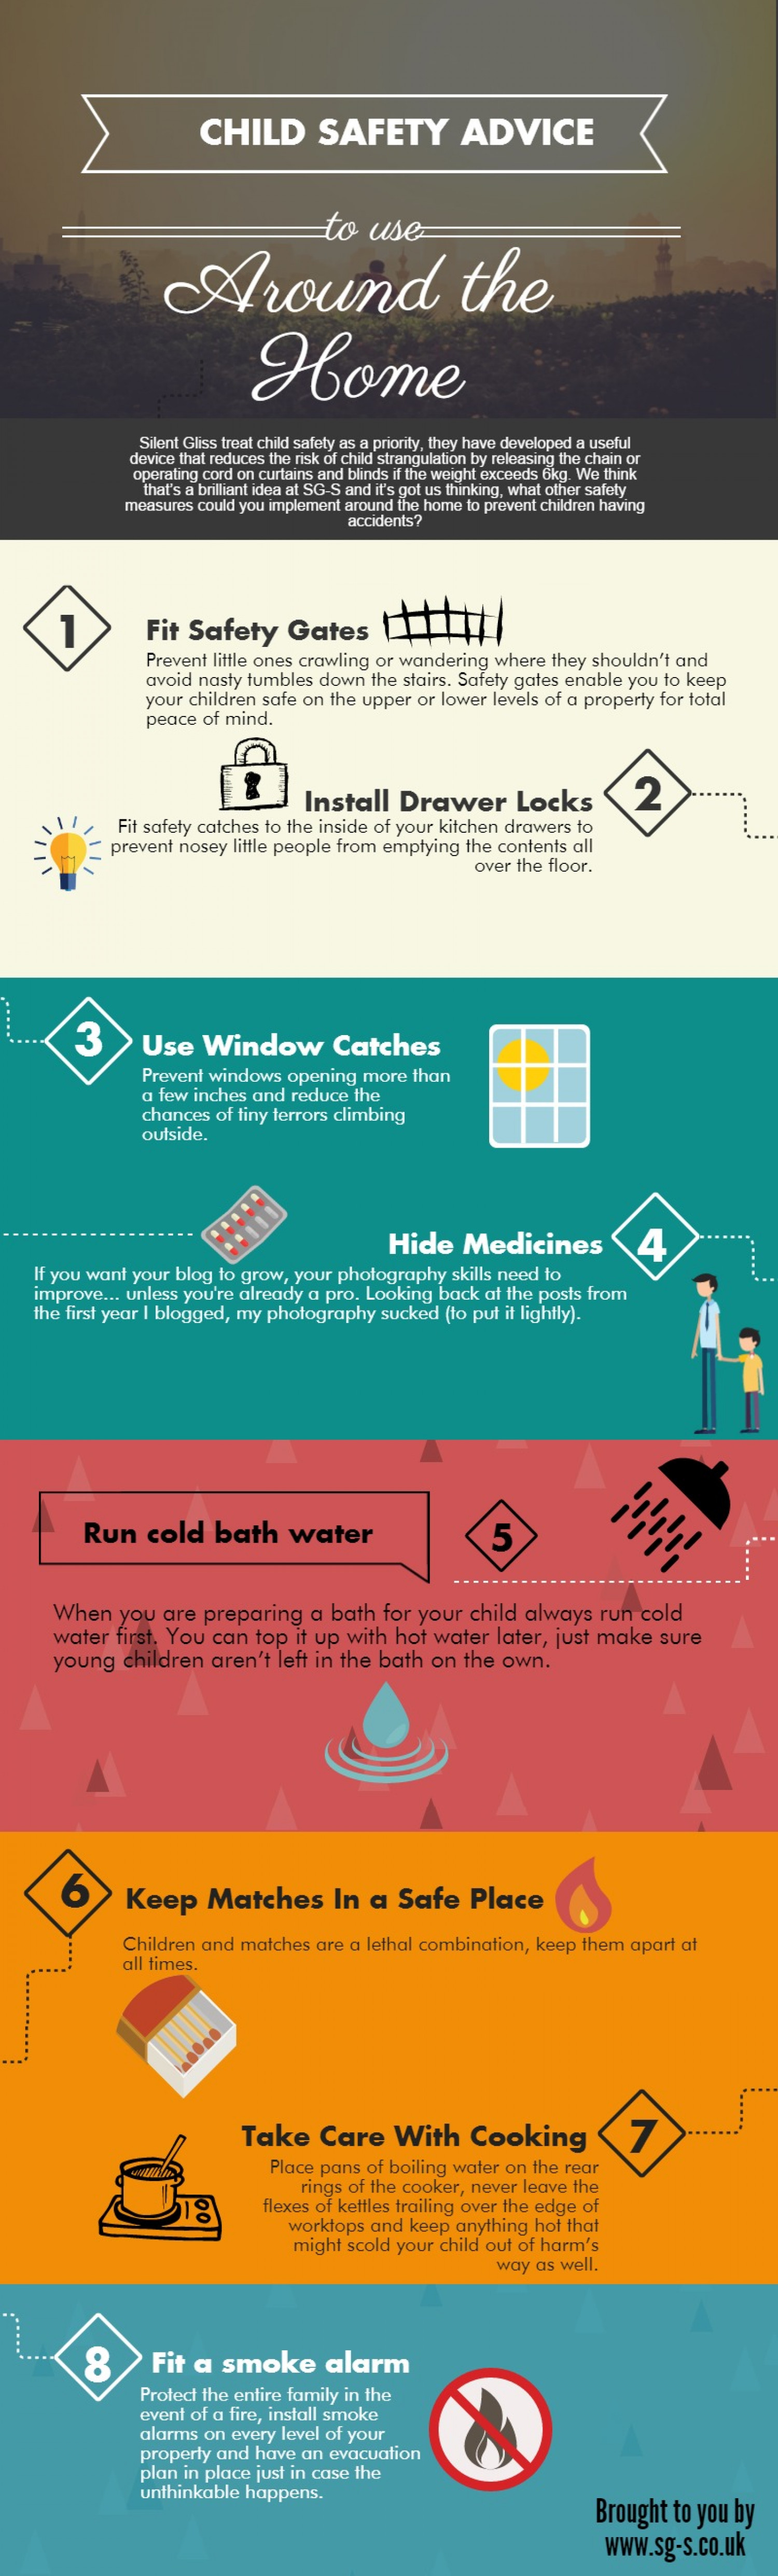 Child Safety Advice For Around The Home Infographic